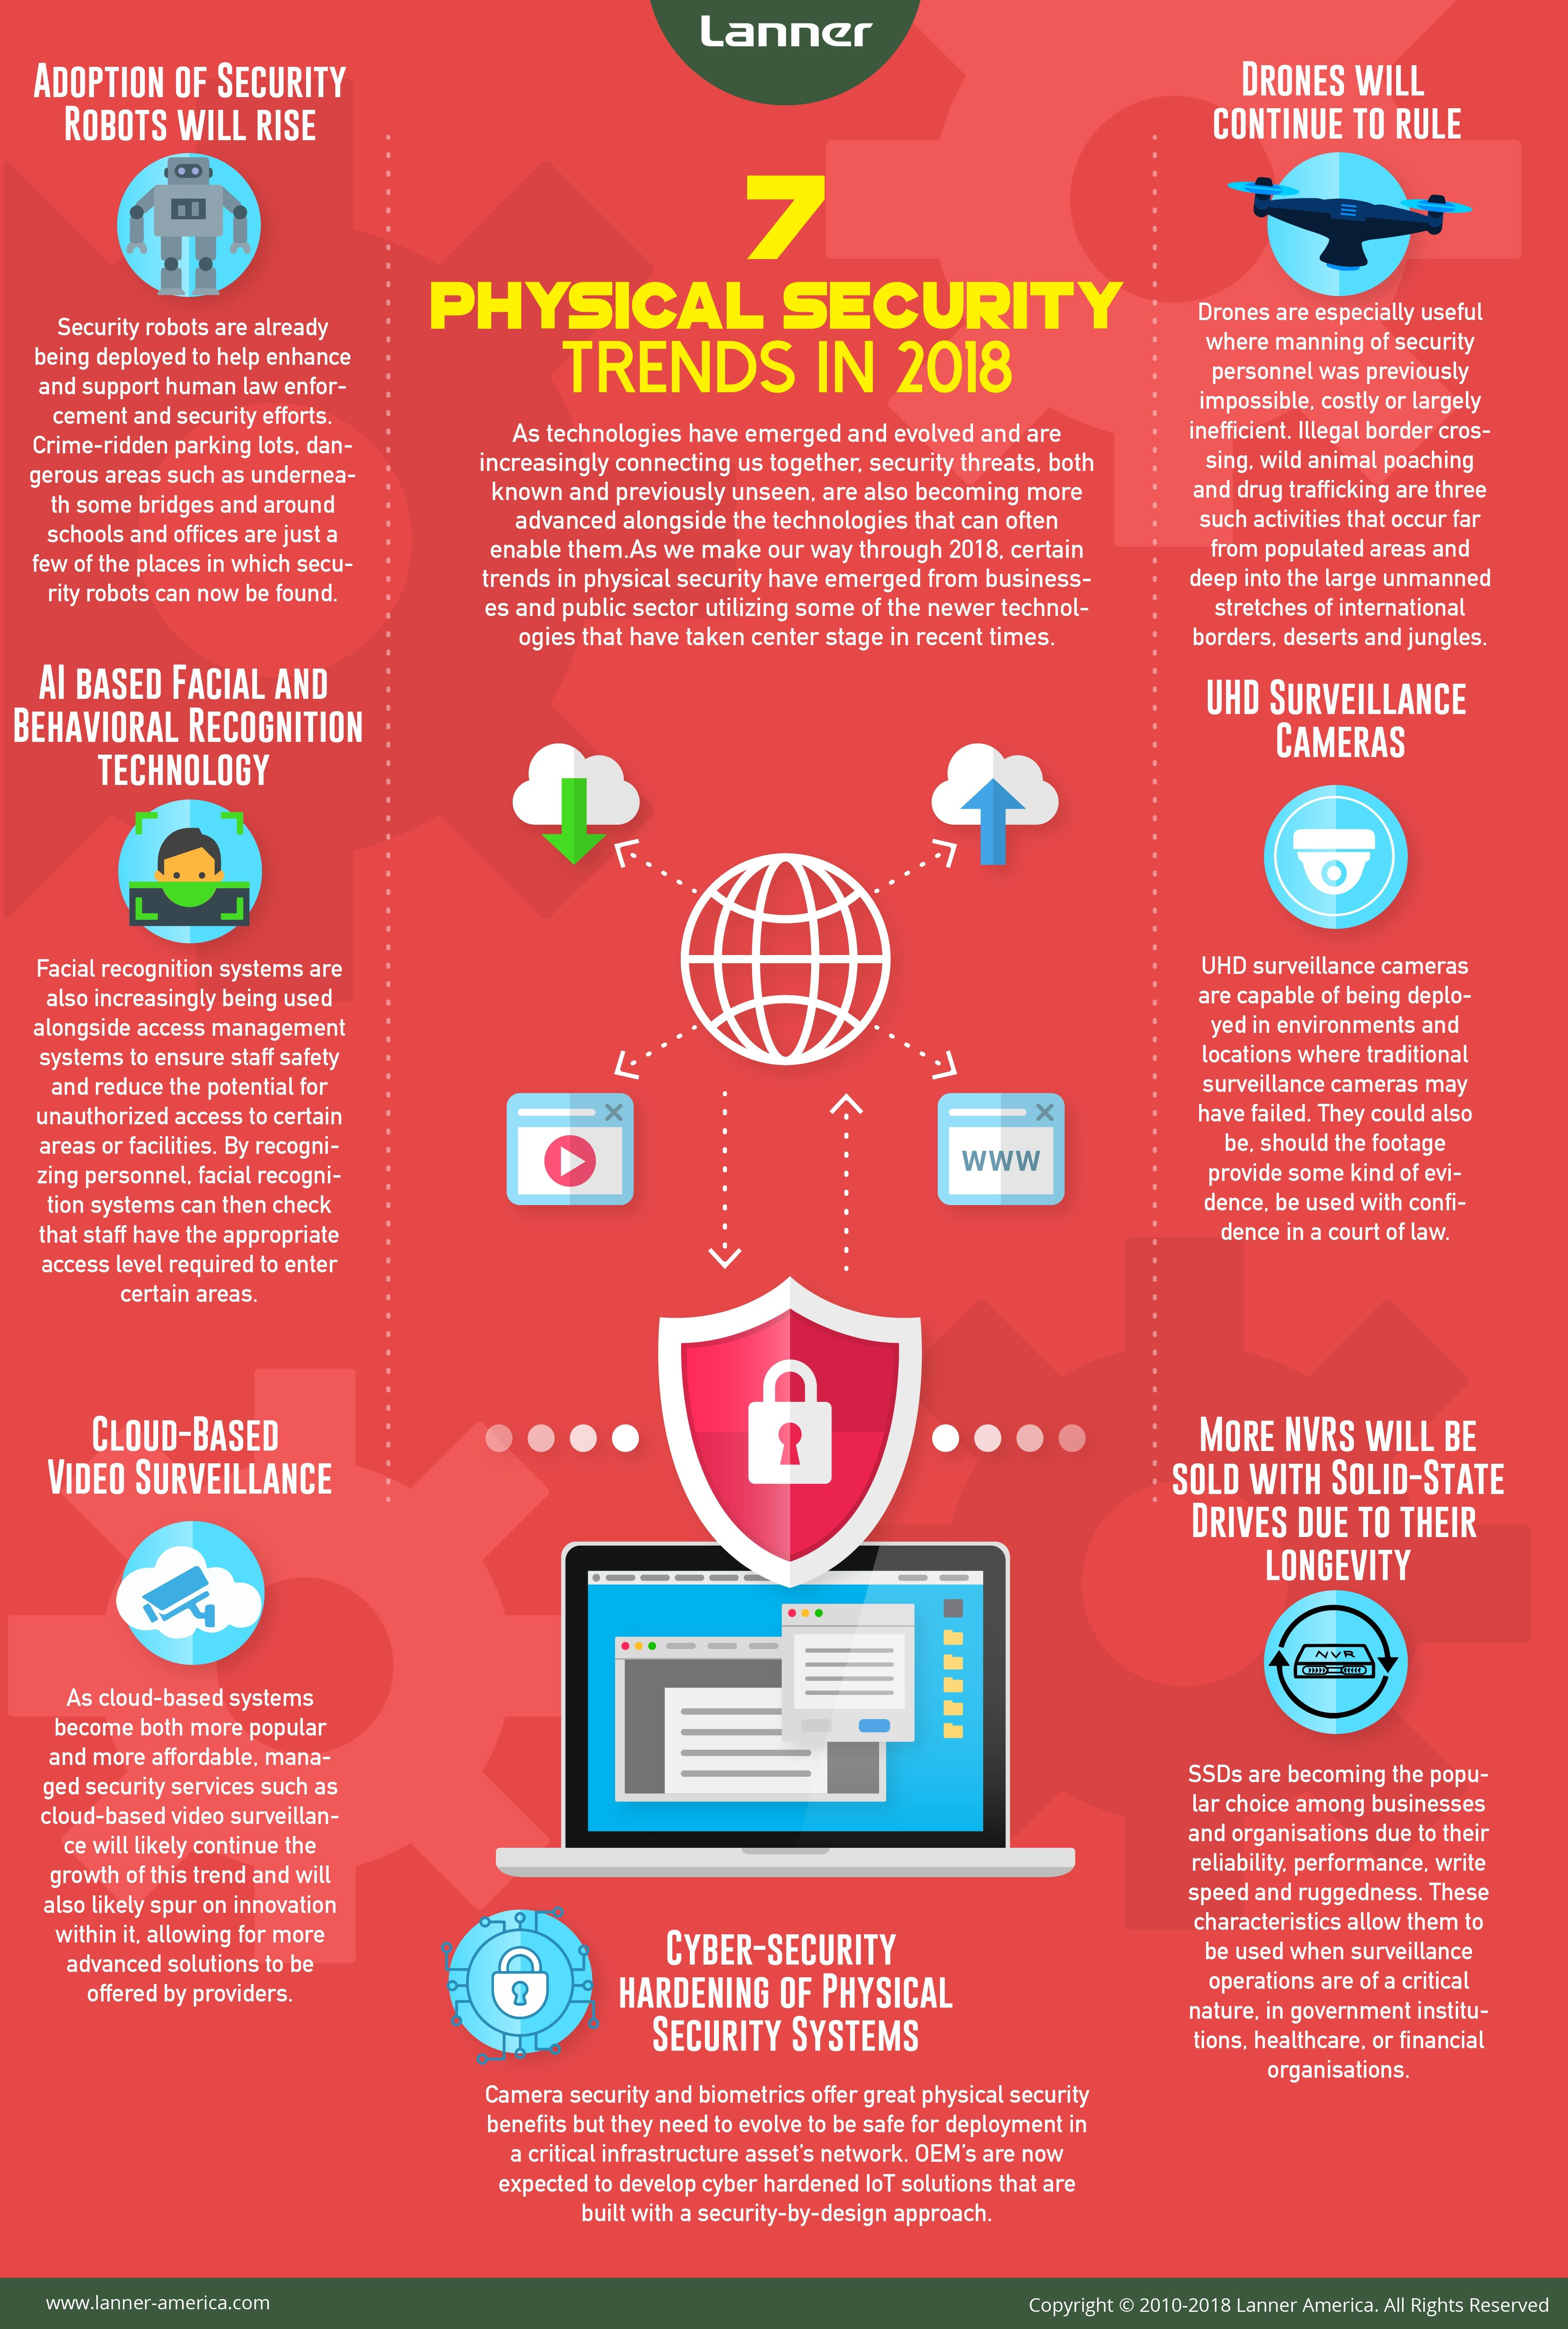 7 Physicalsecurity Trends In 2018 Infographic Https Www Lanner America Com Blog Top Phys Cyber Security Cyber Security Awareness Cyber Security Education